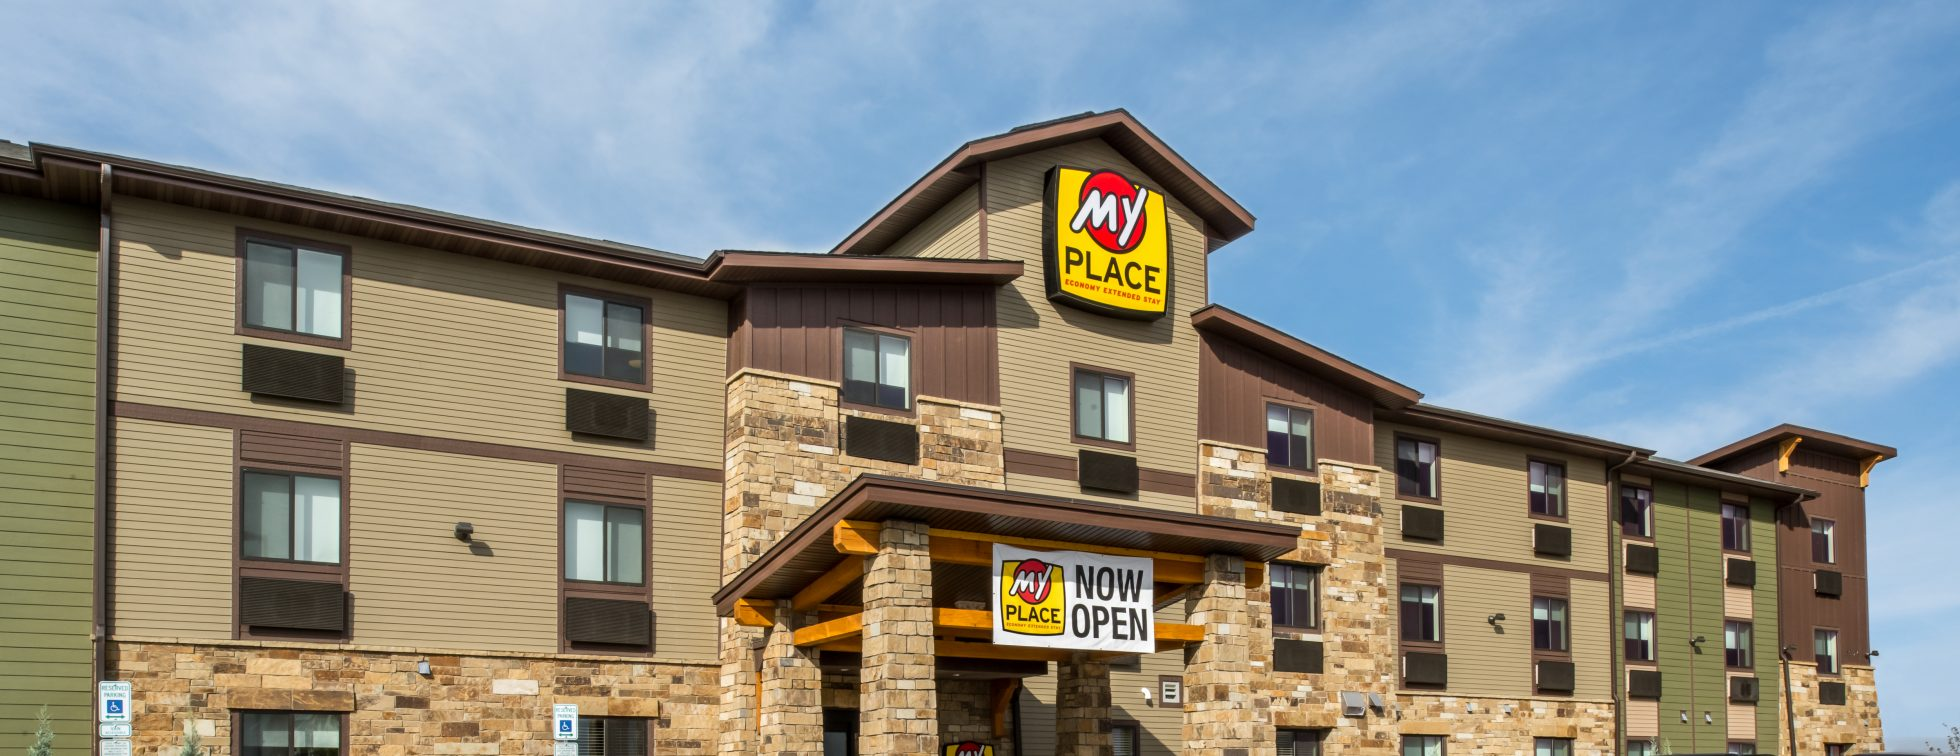 Extended Stay Hotels Loveland Co